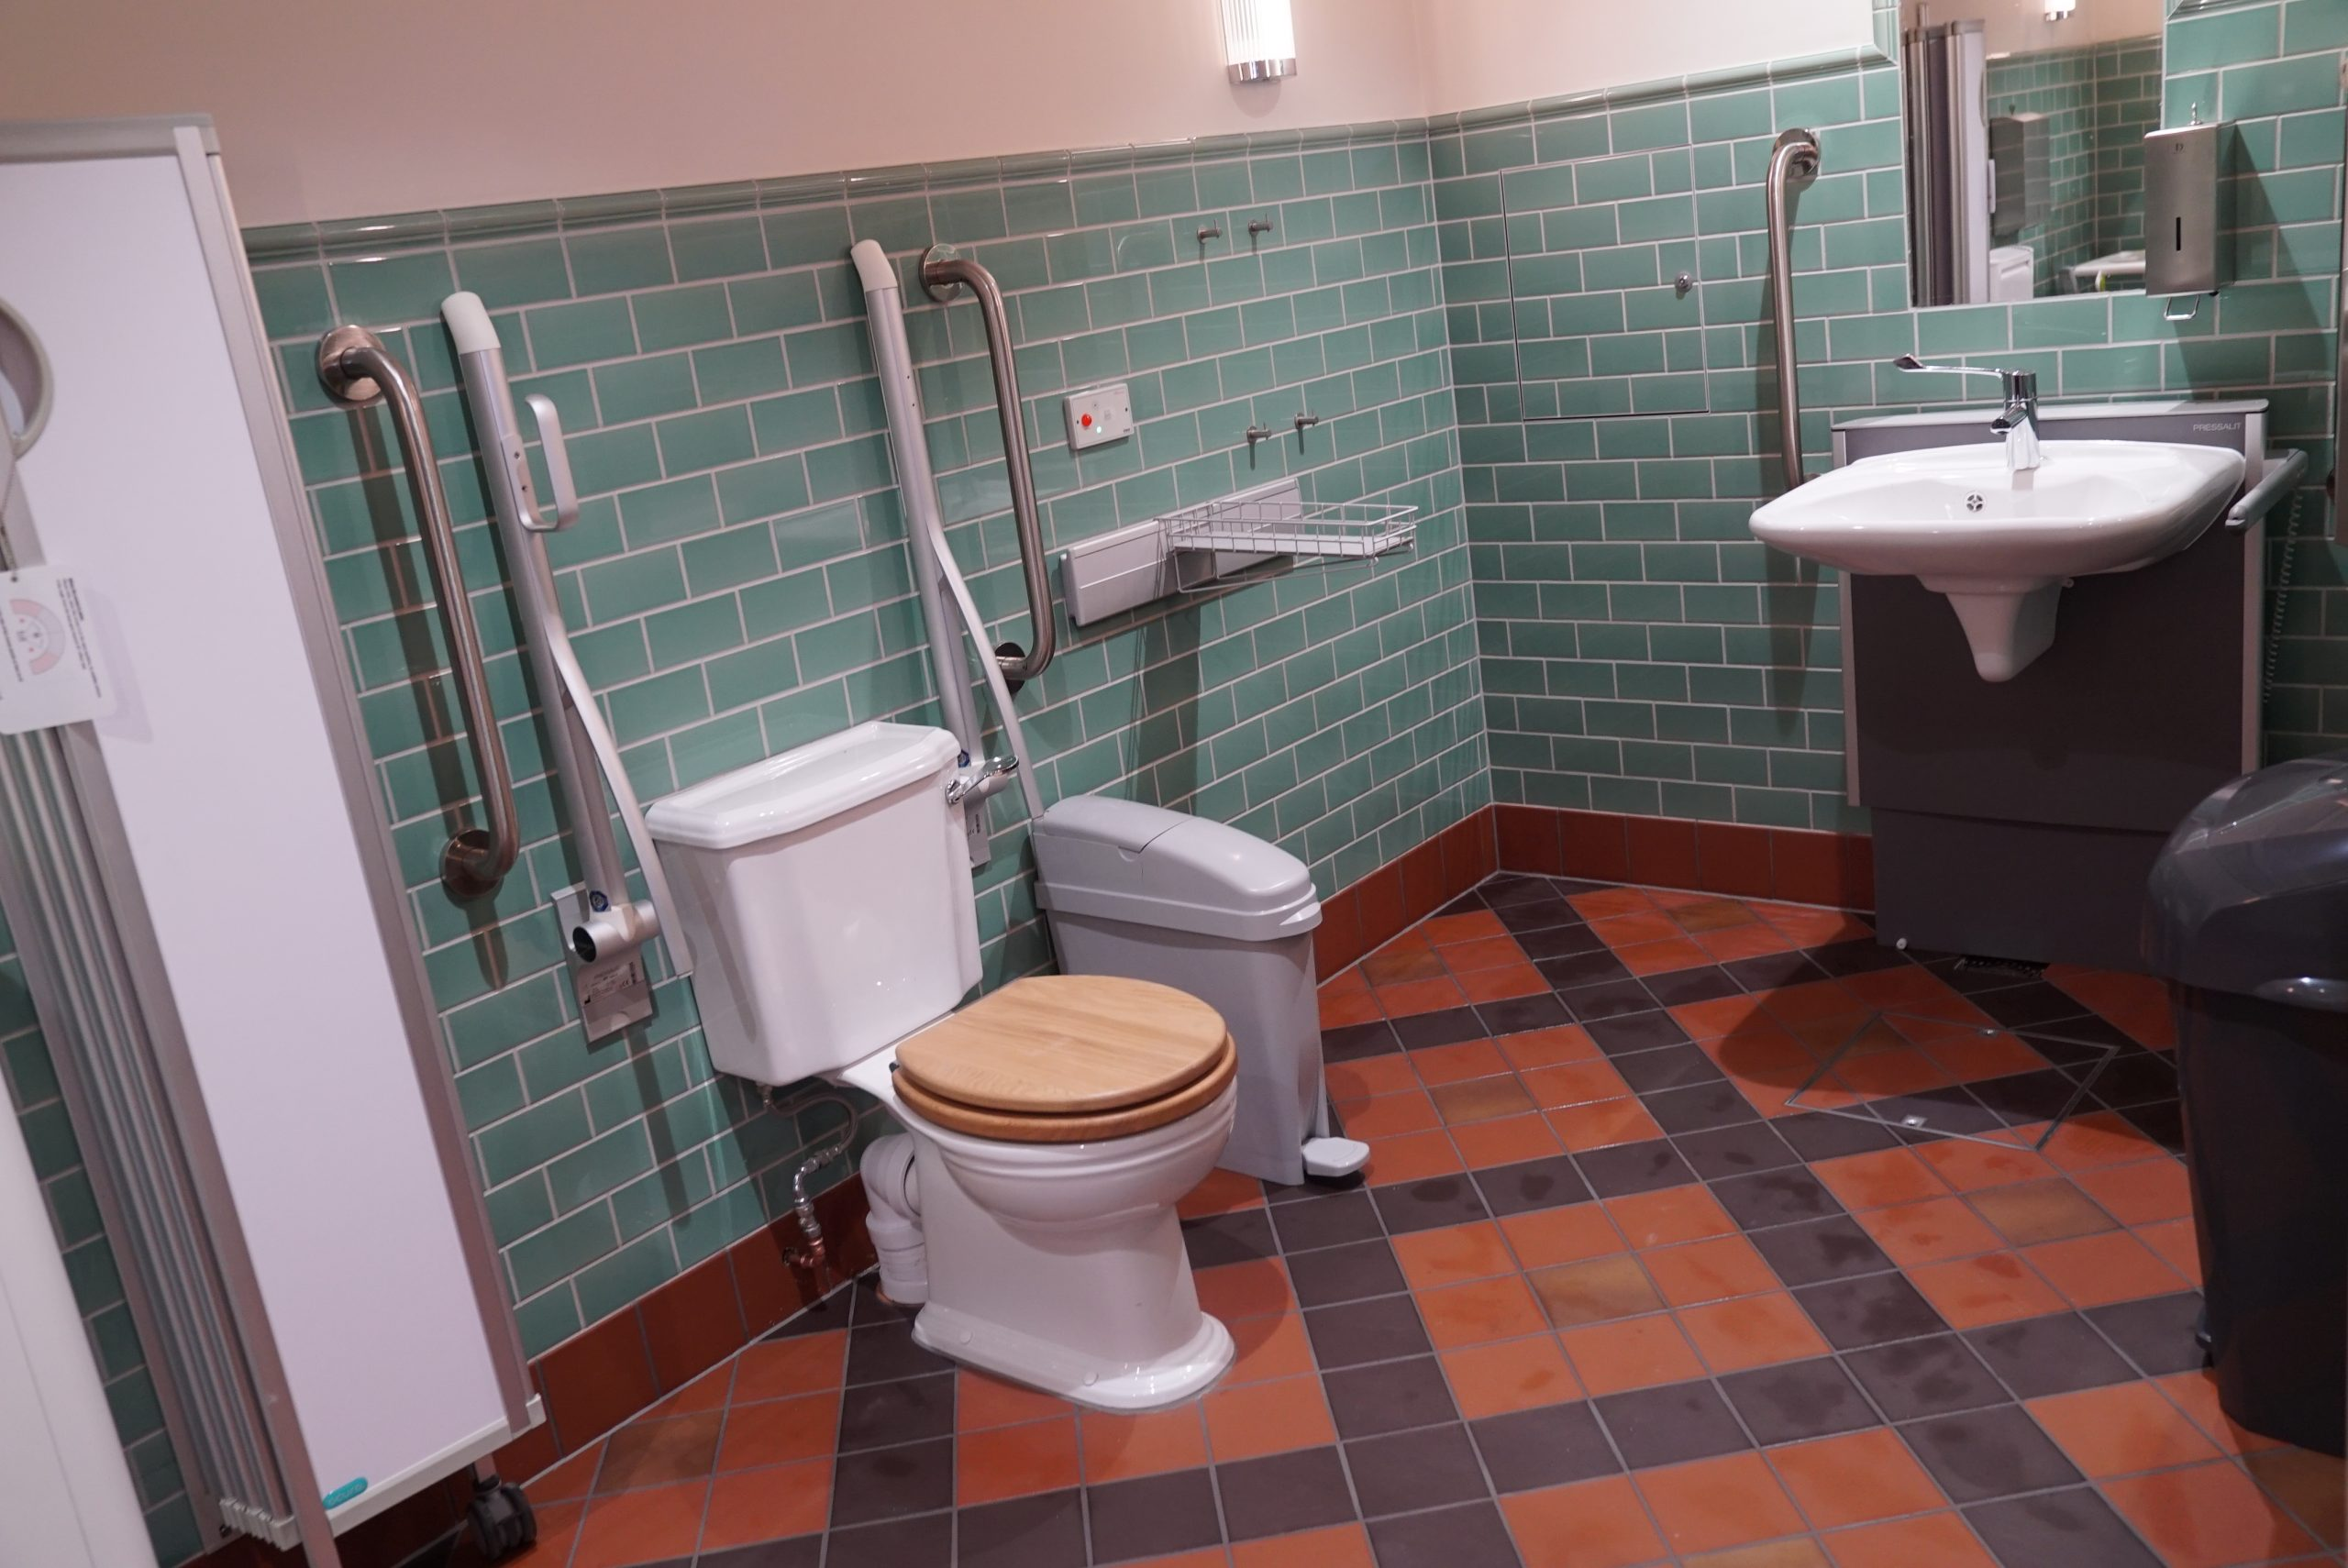 The new Changing Places toilet at the Tower of London